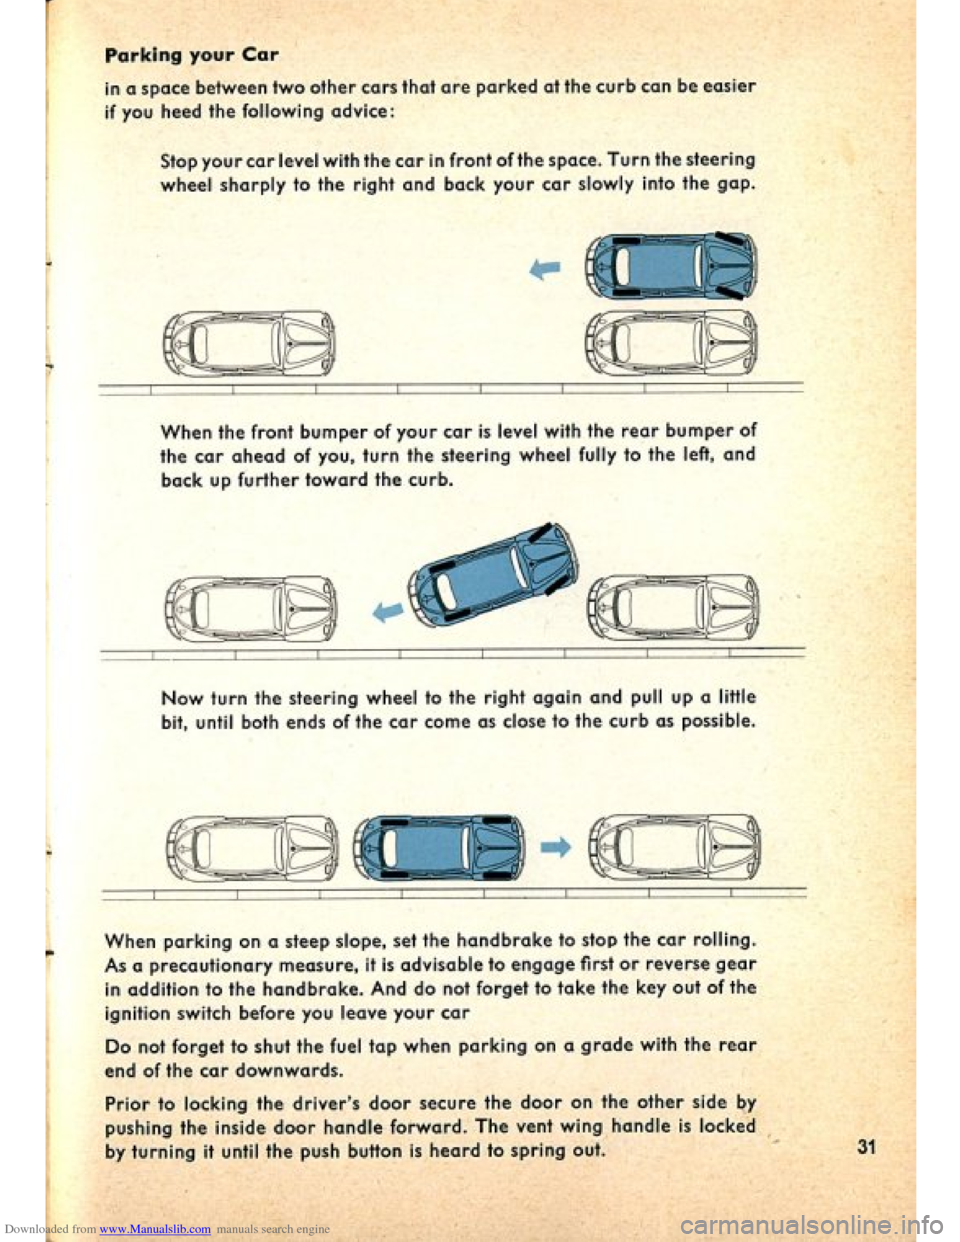 VOLKSWAGEN BEETLE 1960 1.G Owners Manual, Page 33